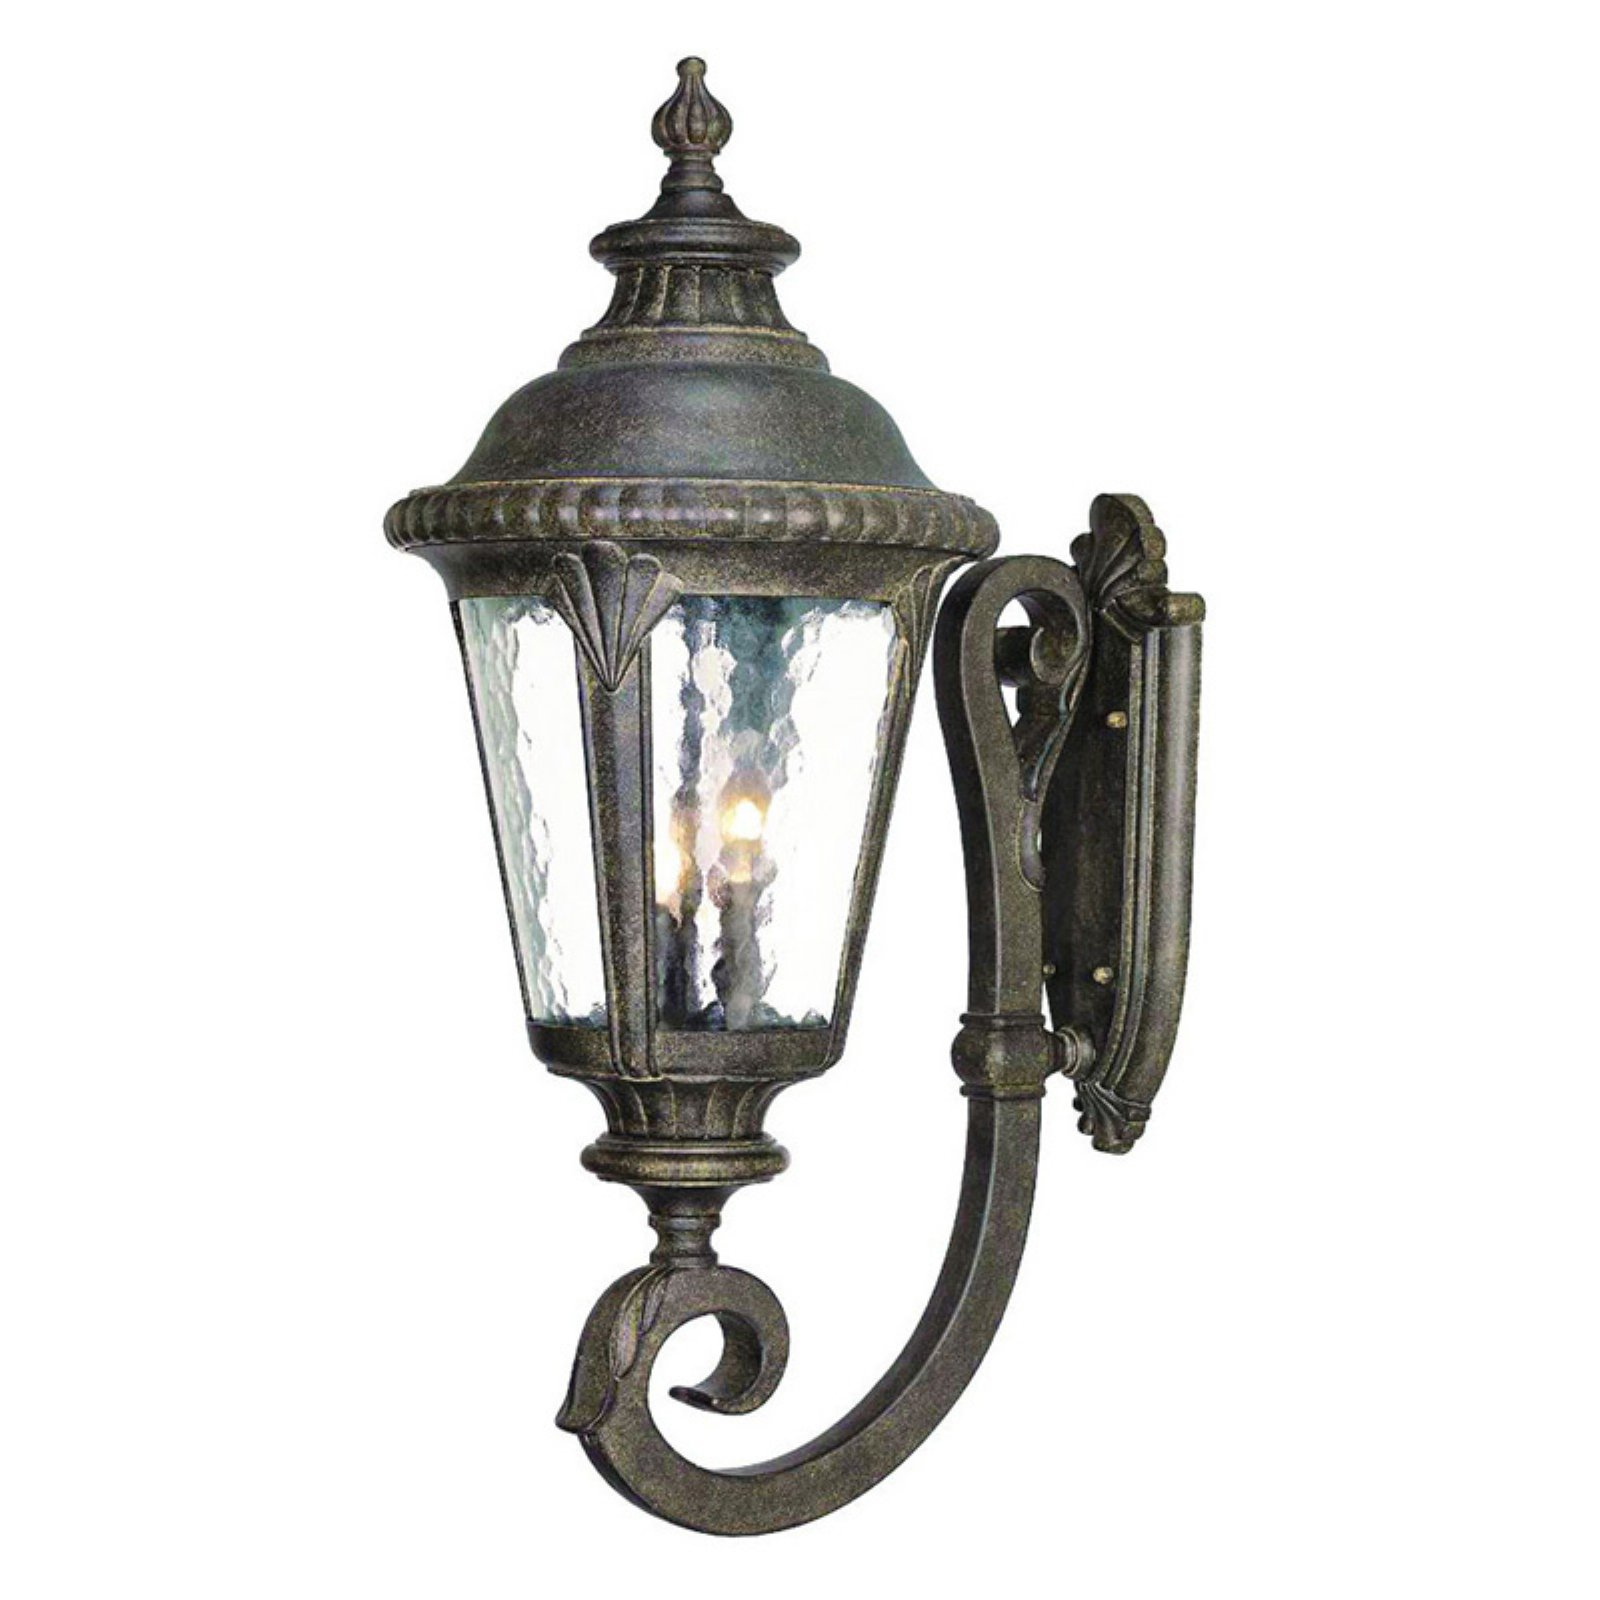 Acclaim Lighting Surrey 12 in. Outdoor Wall Mount Light Fixture